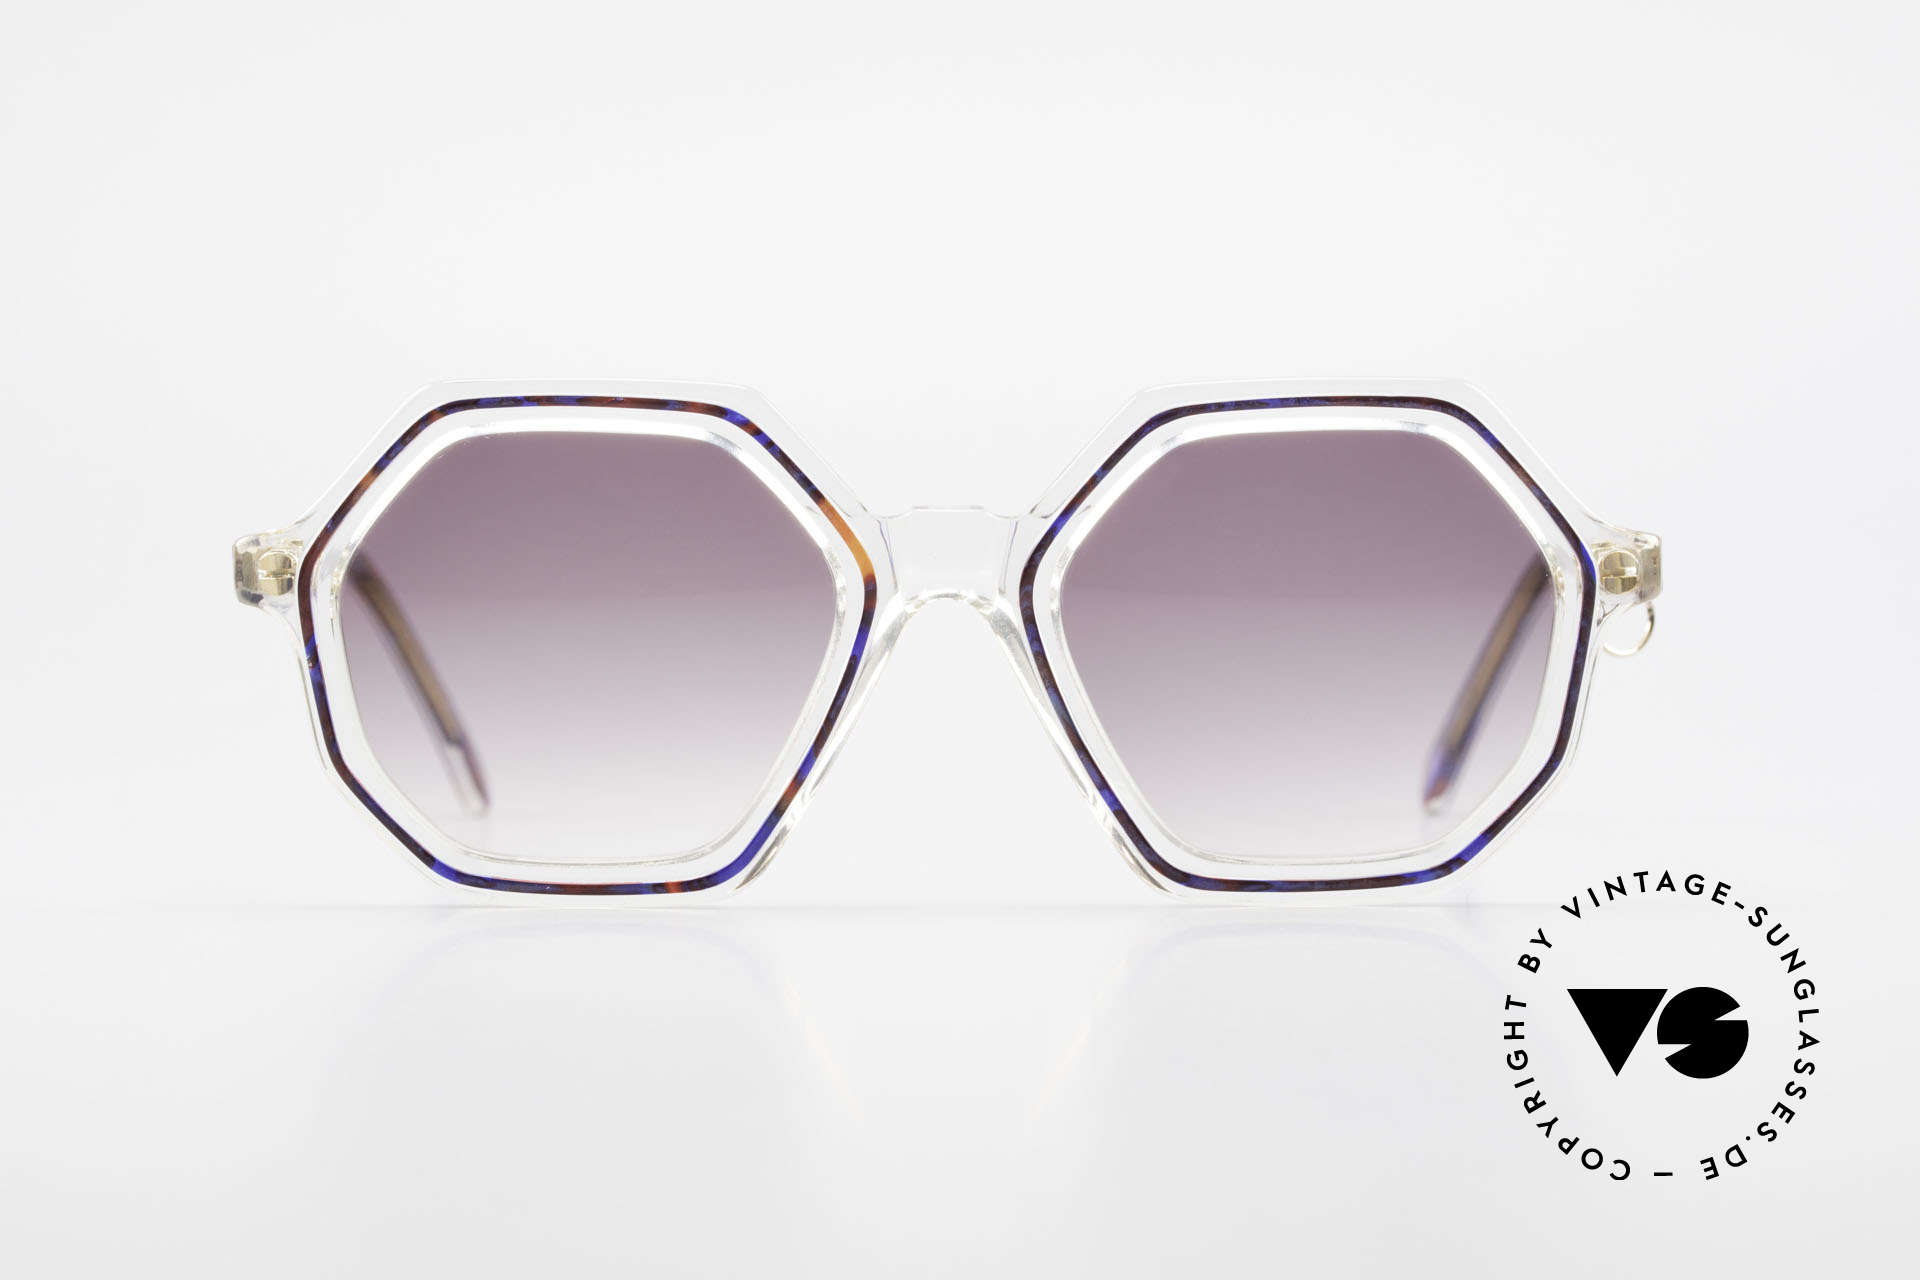 Sonia Rykiel SR46 756 Octagonal 70's Sunglasses, a true rarity, clear frame with blue & red + golden Ring, Made for Women